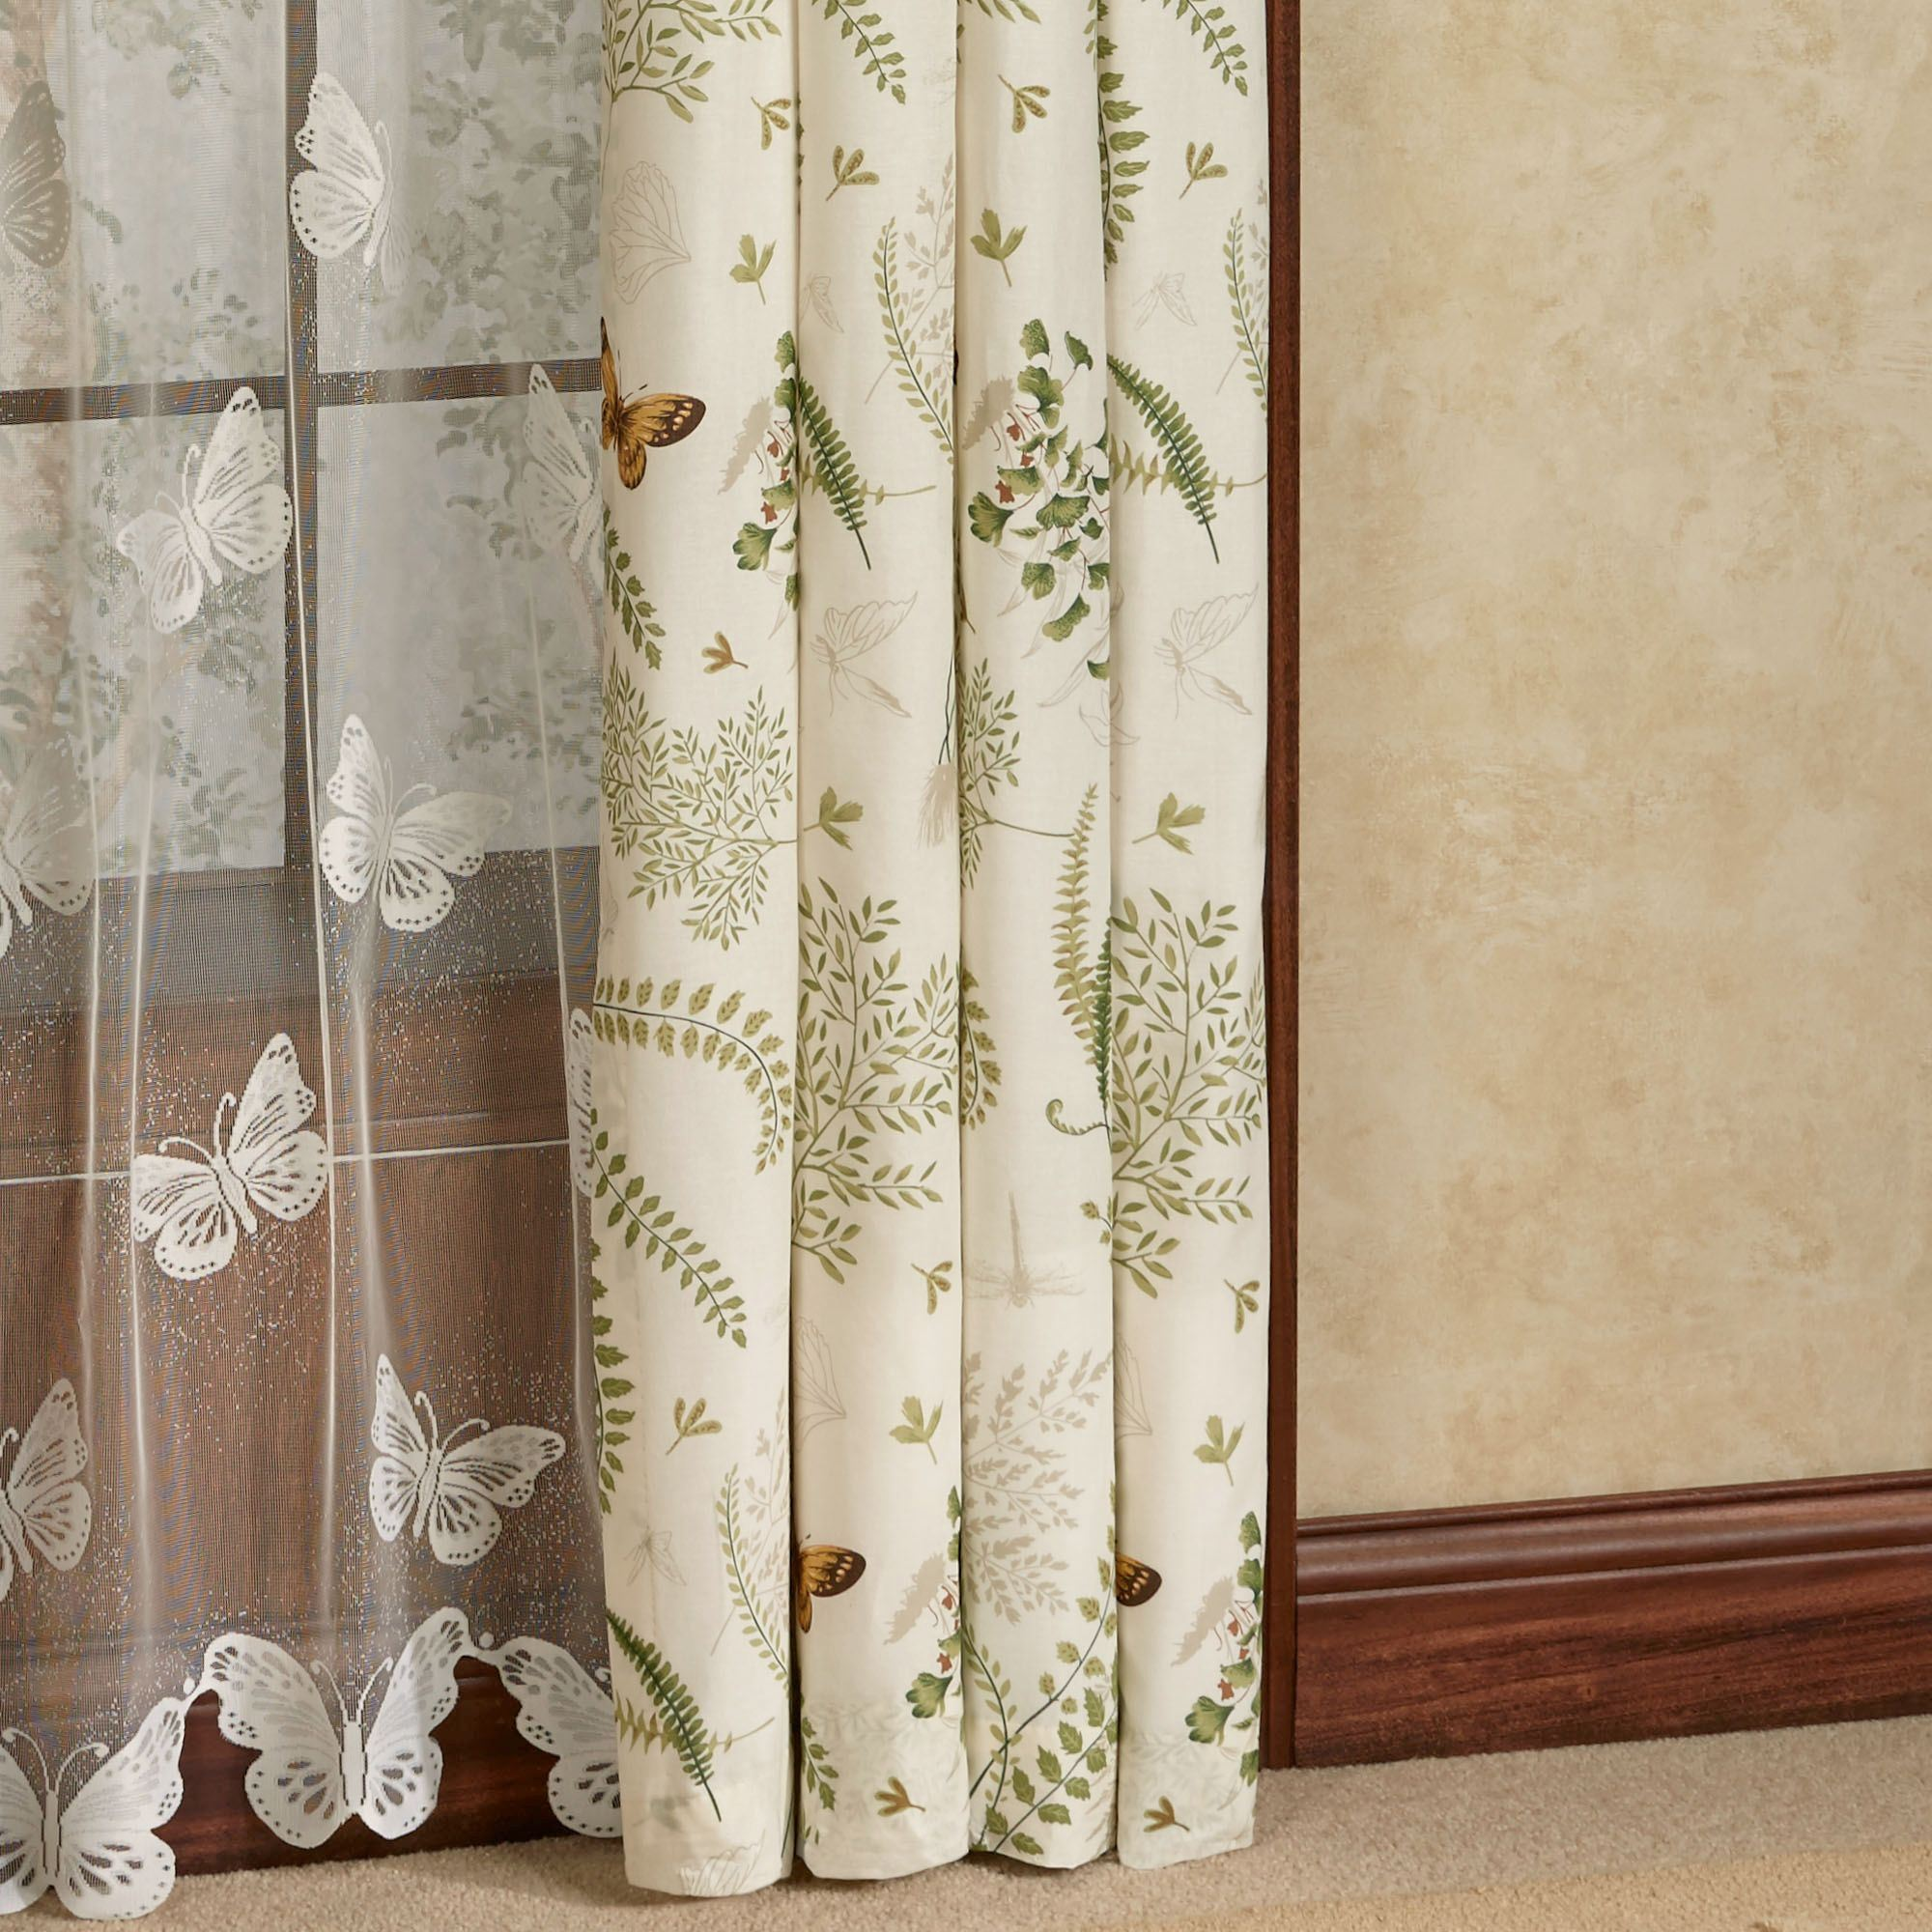 Althea Erfly Dragonfly Window Treatment